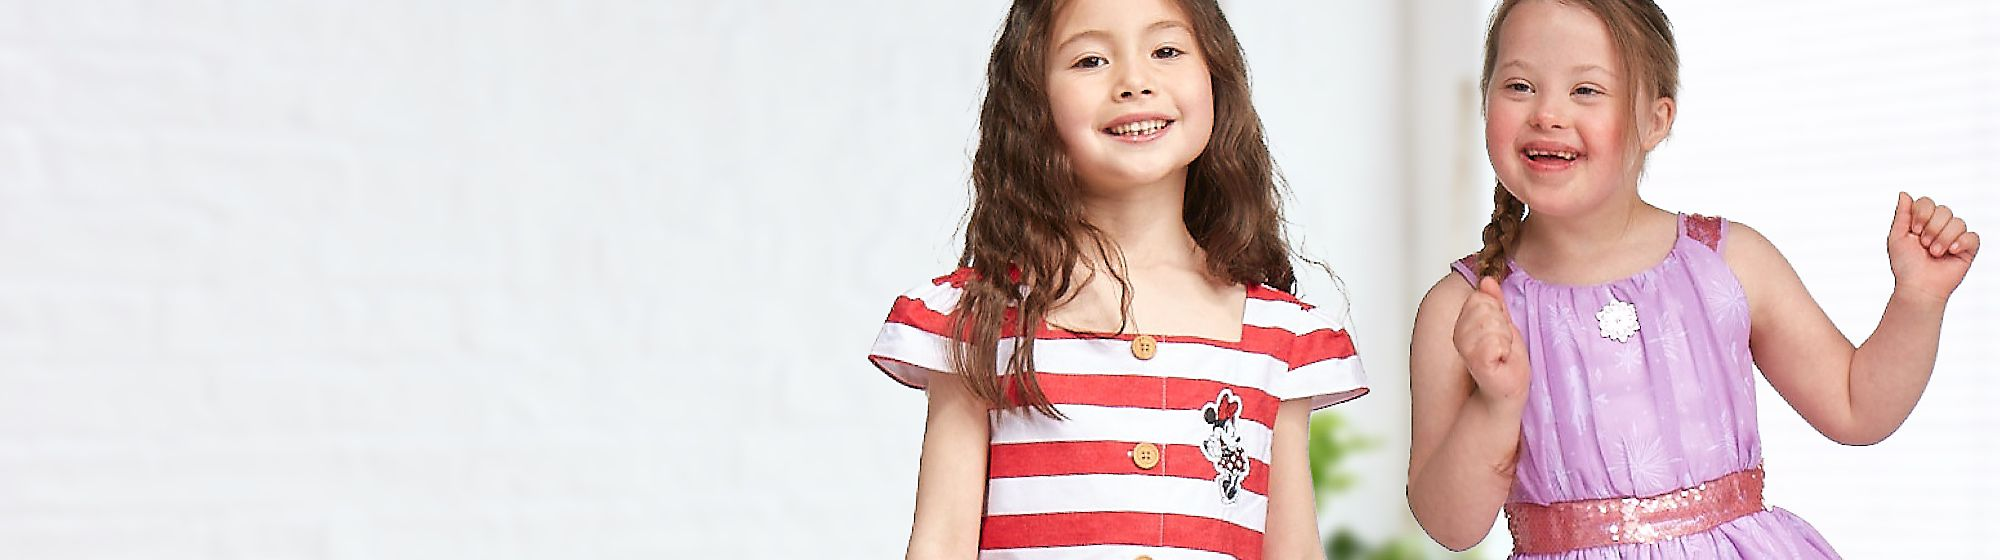 Girls' Clothing Show your Disney style with our range of girls' clothing, including t-shirts, dresses, skirts and more